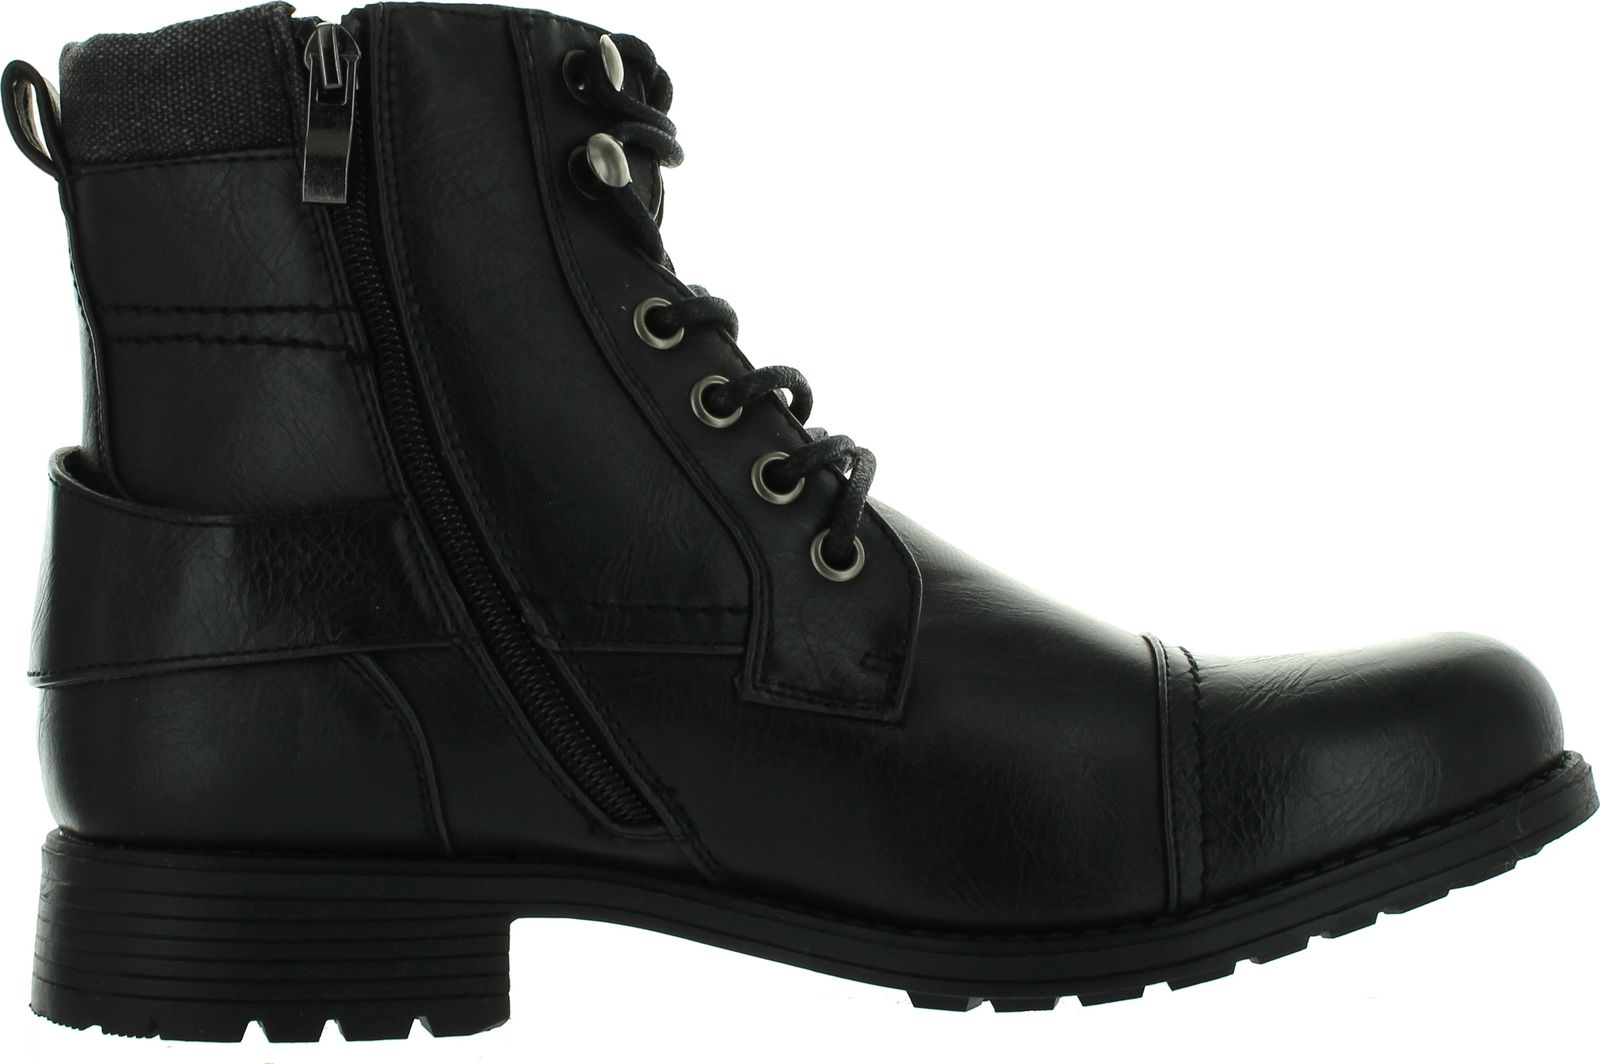 Arider Bull-01 Mens Ankle Combat Army Low-Top Causal Boots | eBay